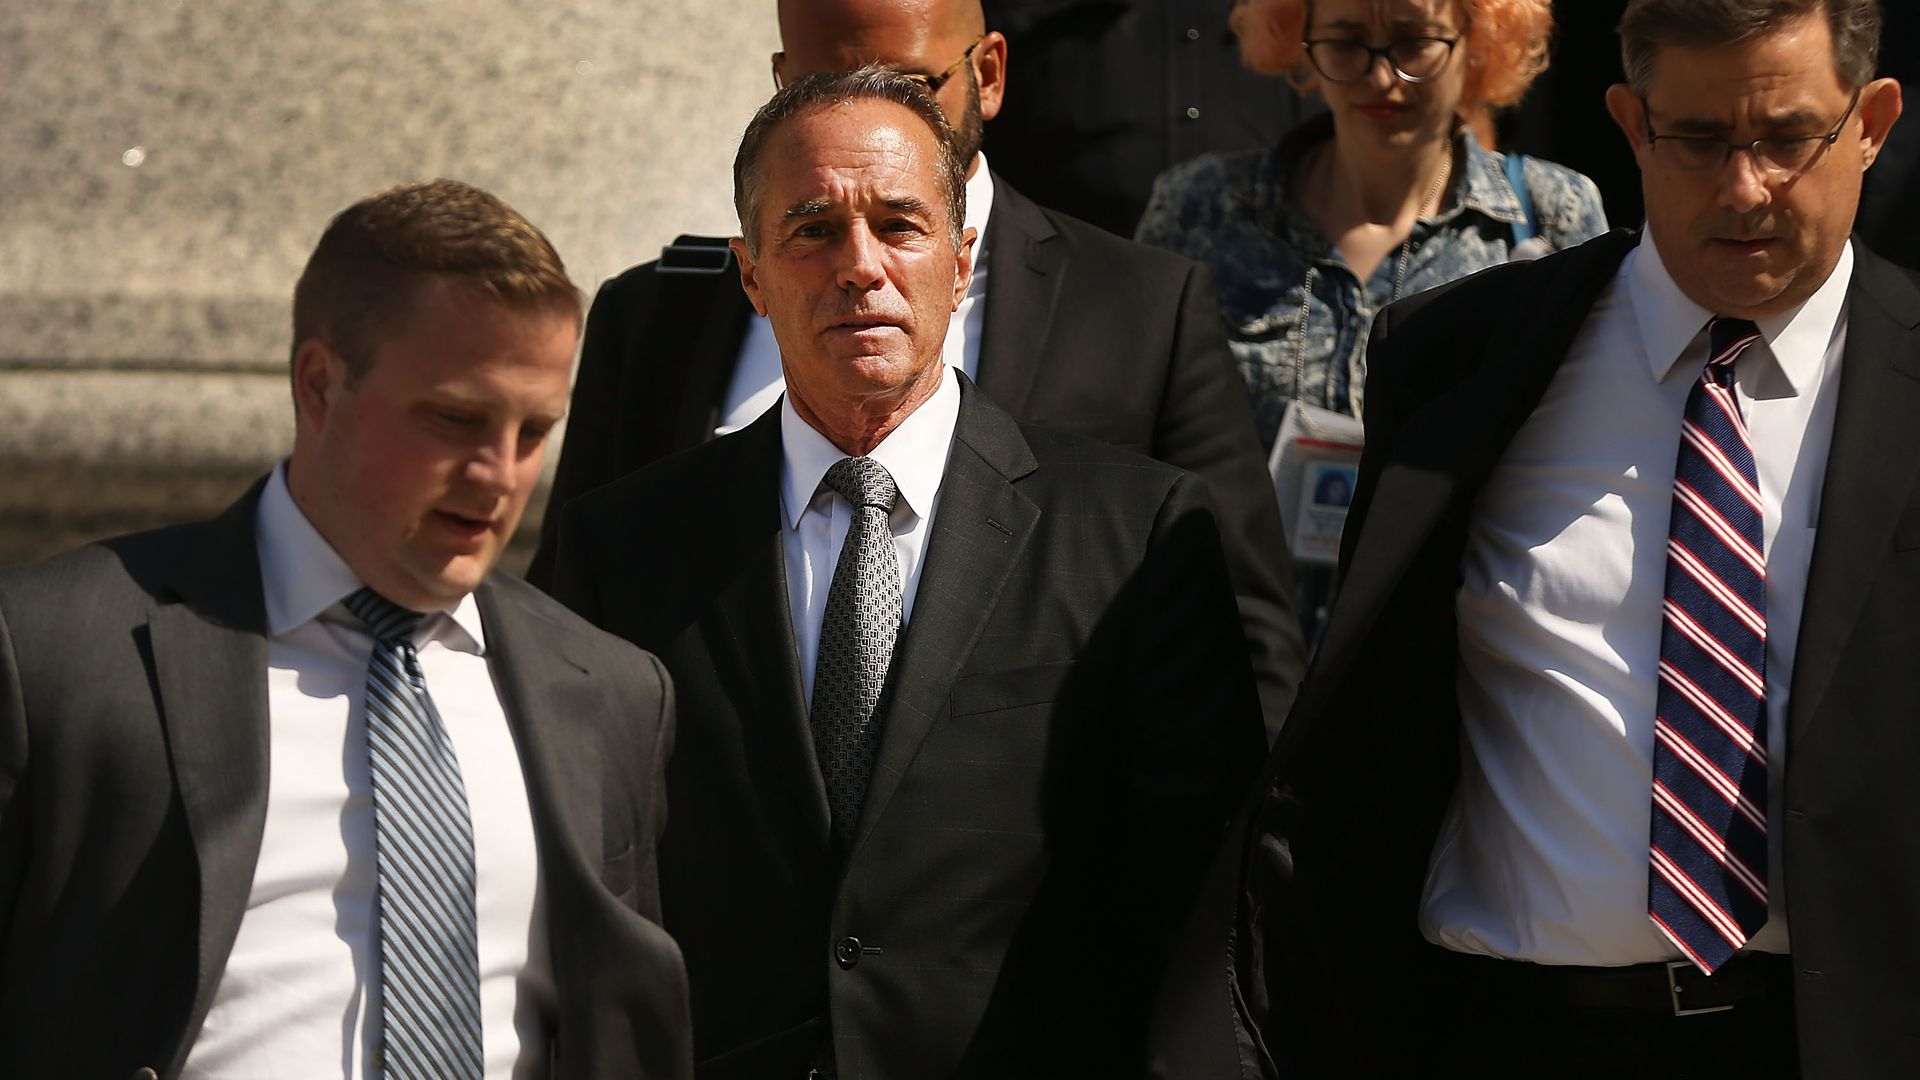 Rep. Chris Collins walking out of a court house surrounded by body guards